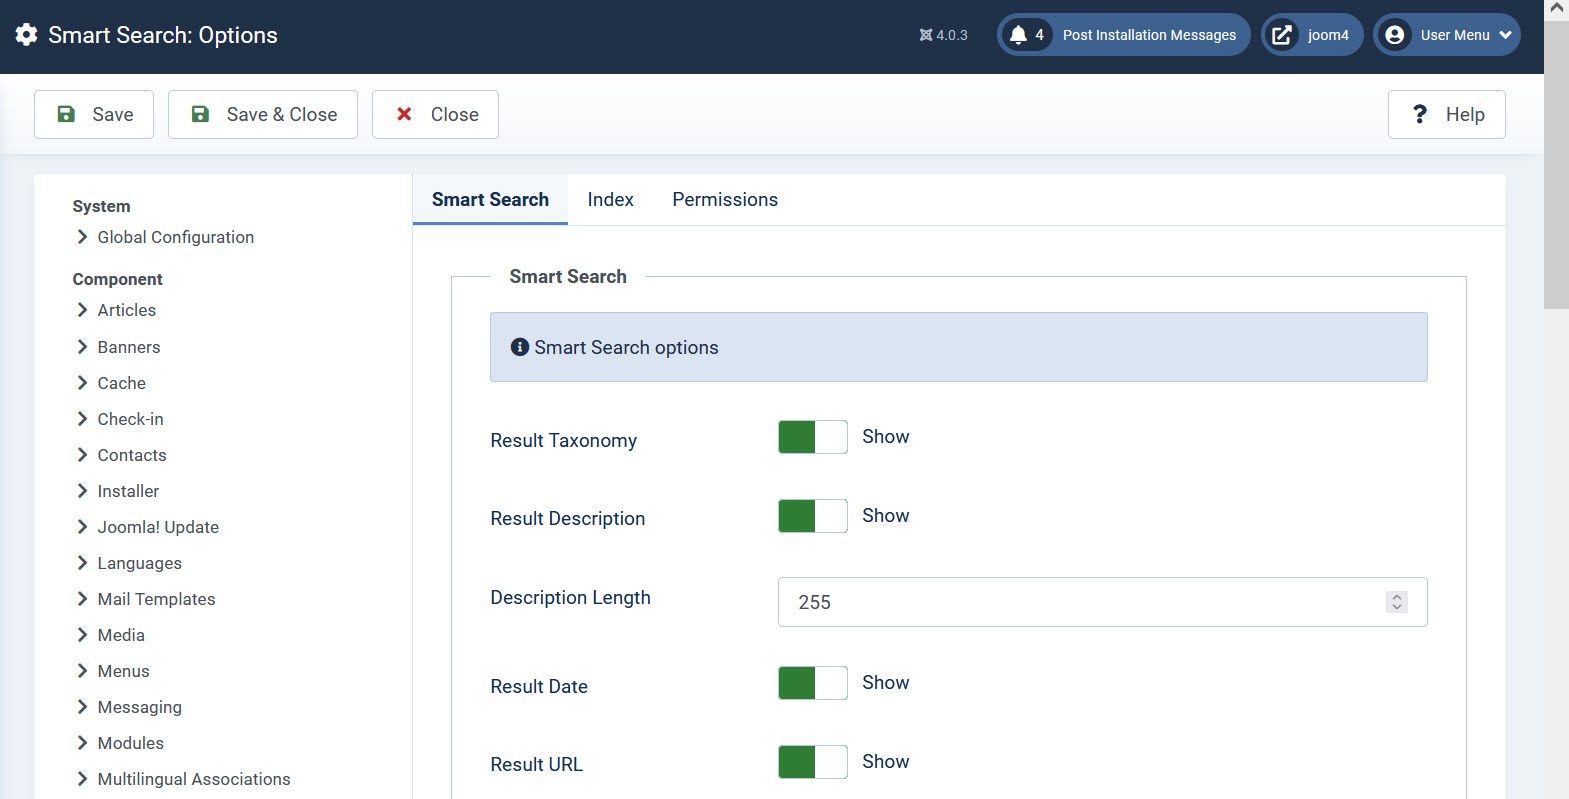 Smart Search Options